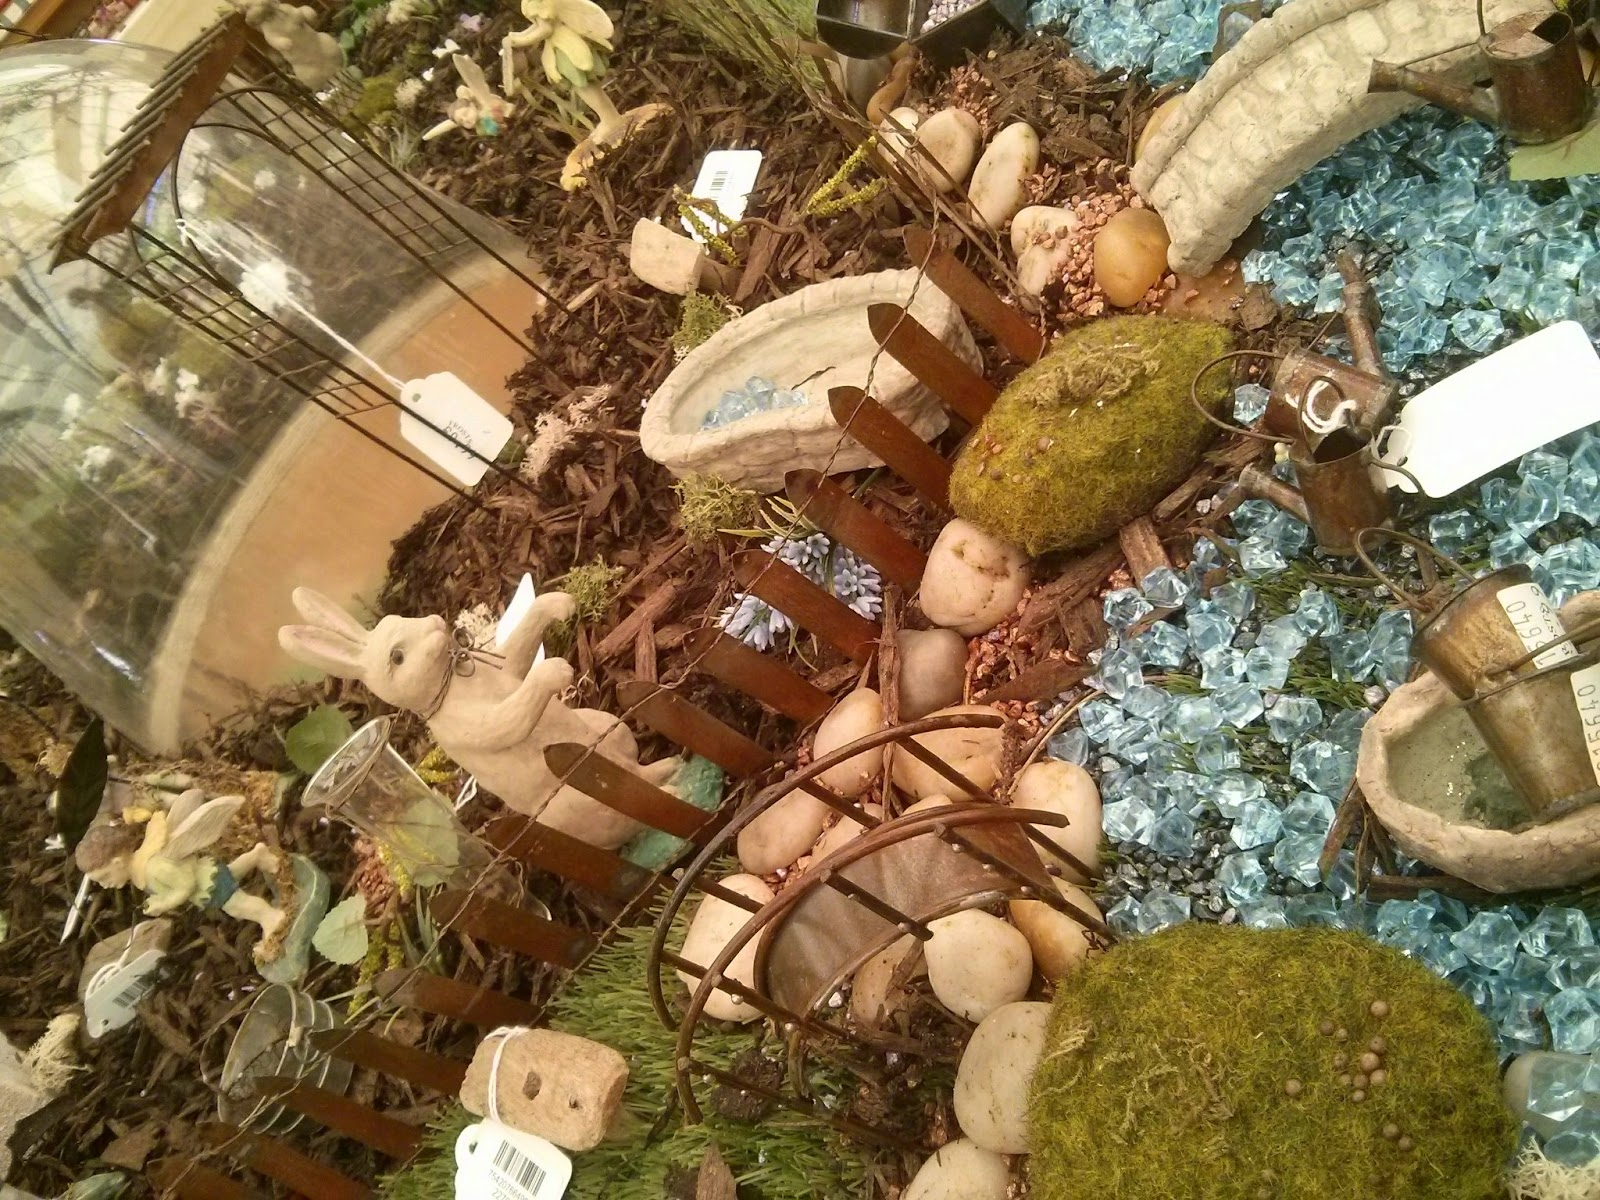 a part of the Fairy Garden